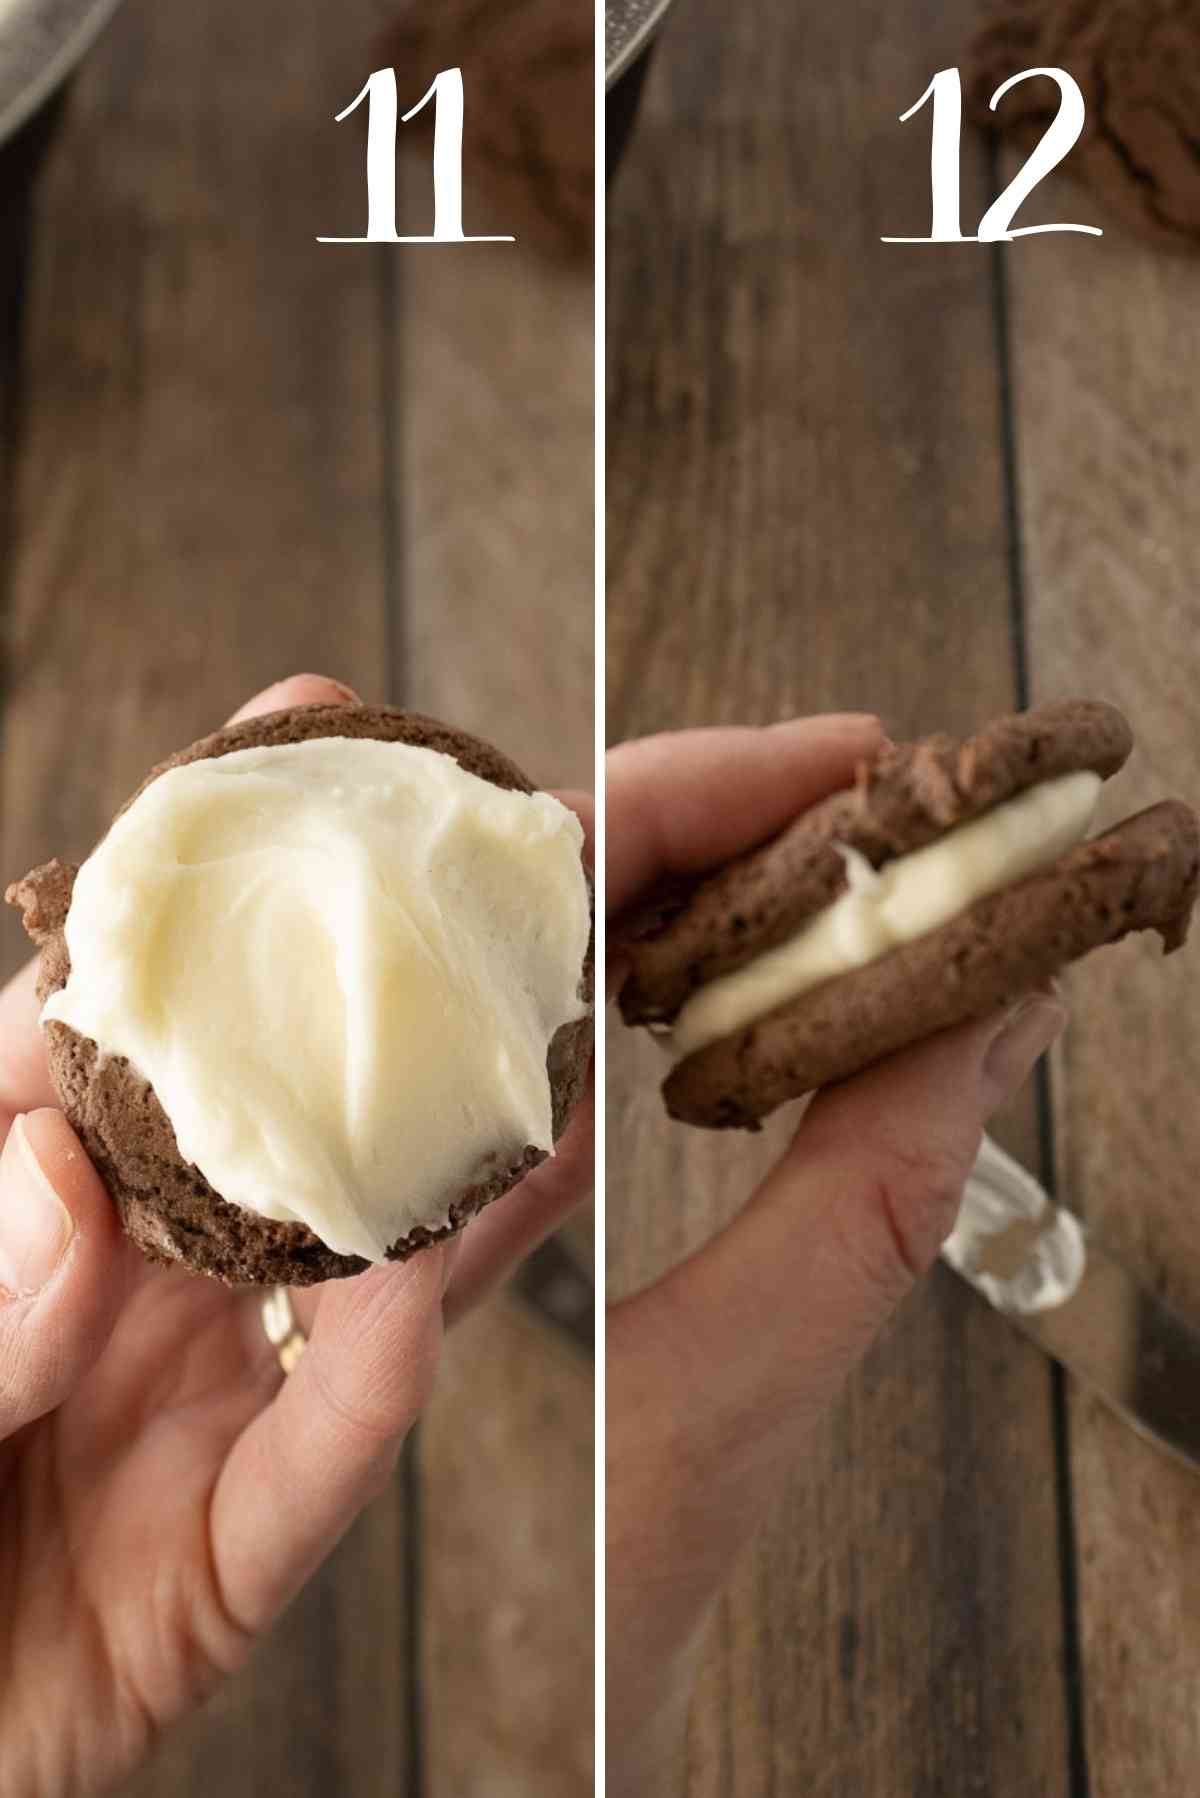 Cookies frosted and sandwiched together.